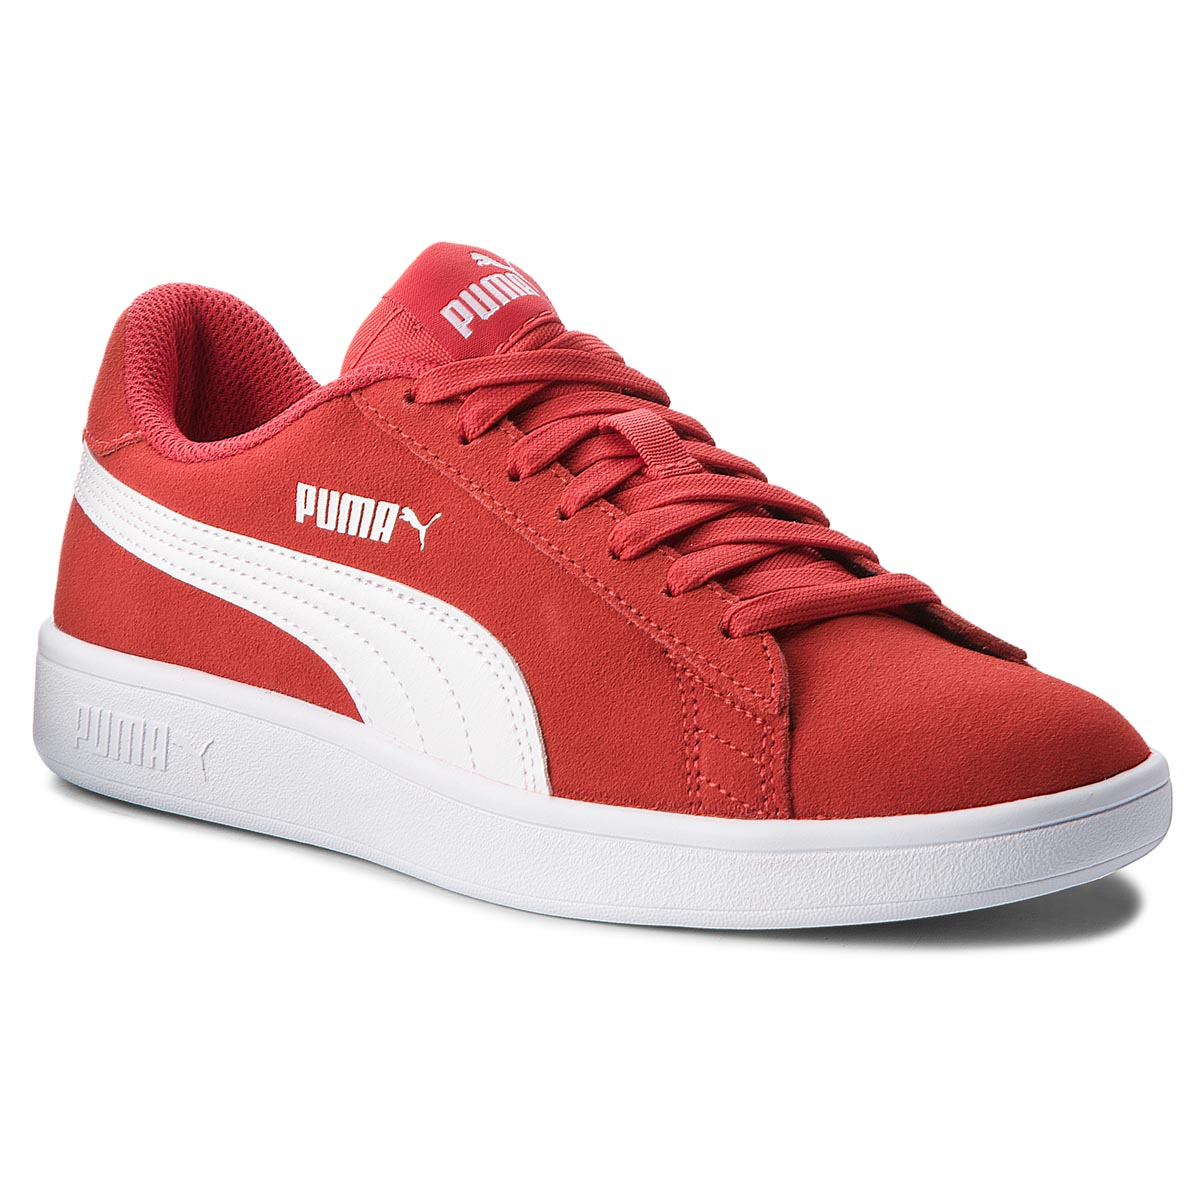 Sneakersy PUMA - Smash V2 364989 18 Ribbon Red/Puma White